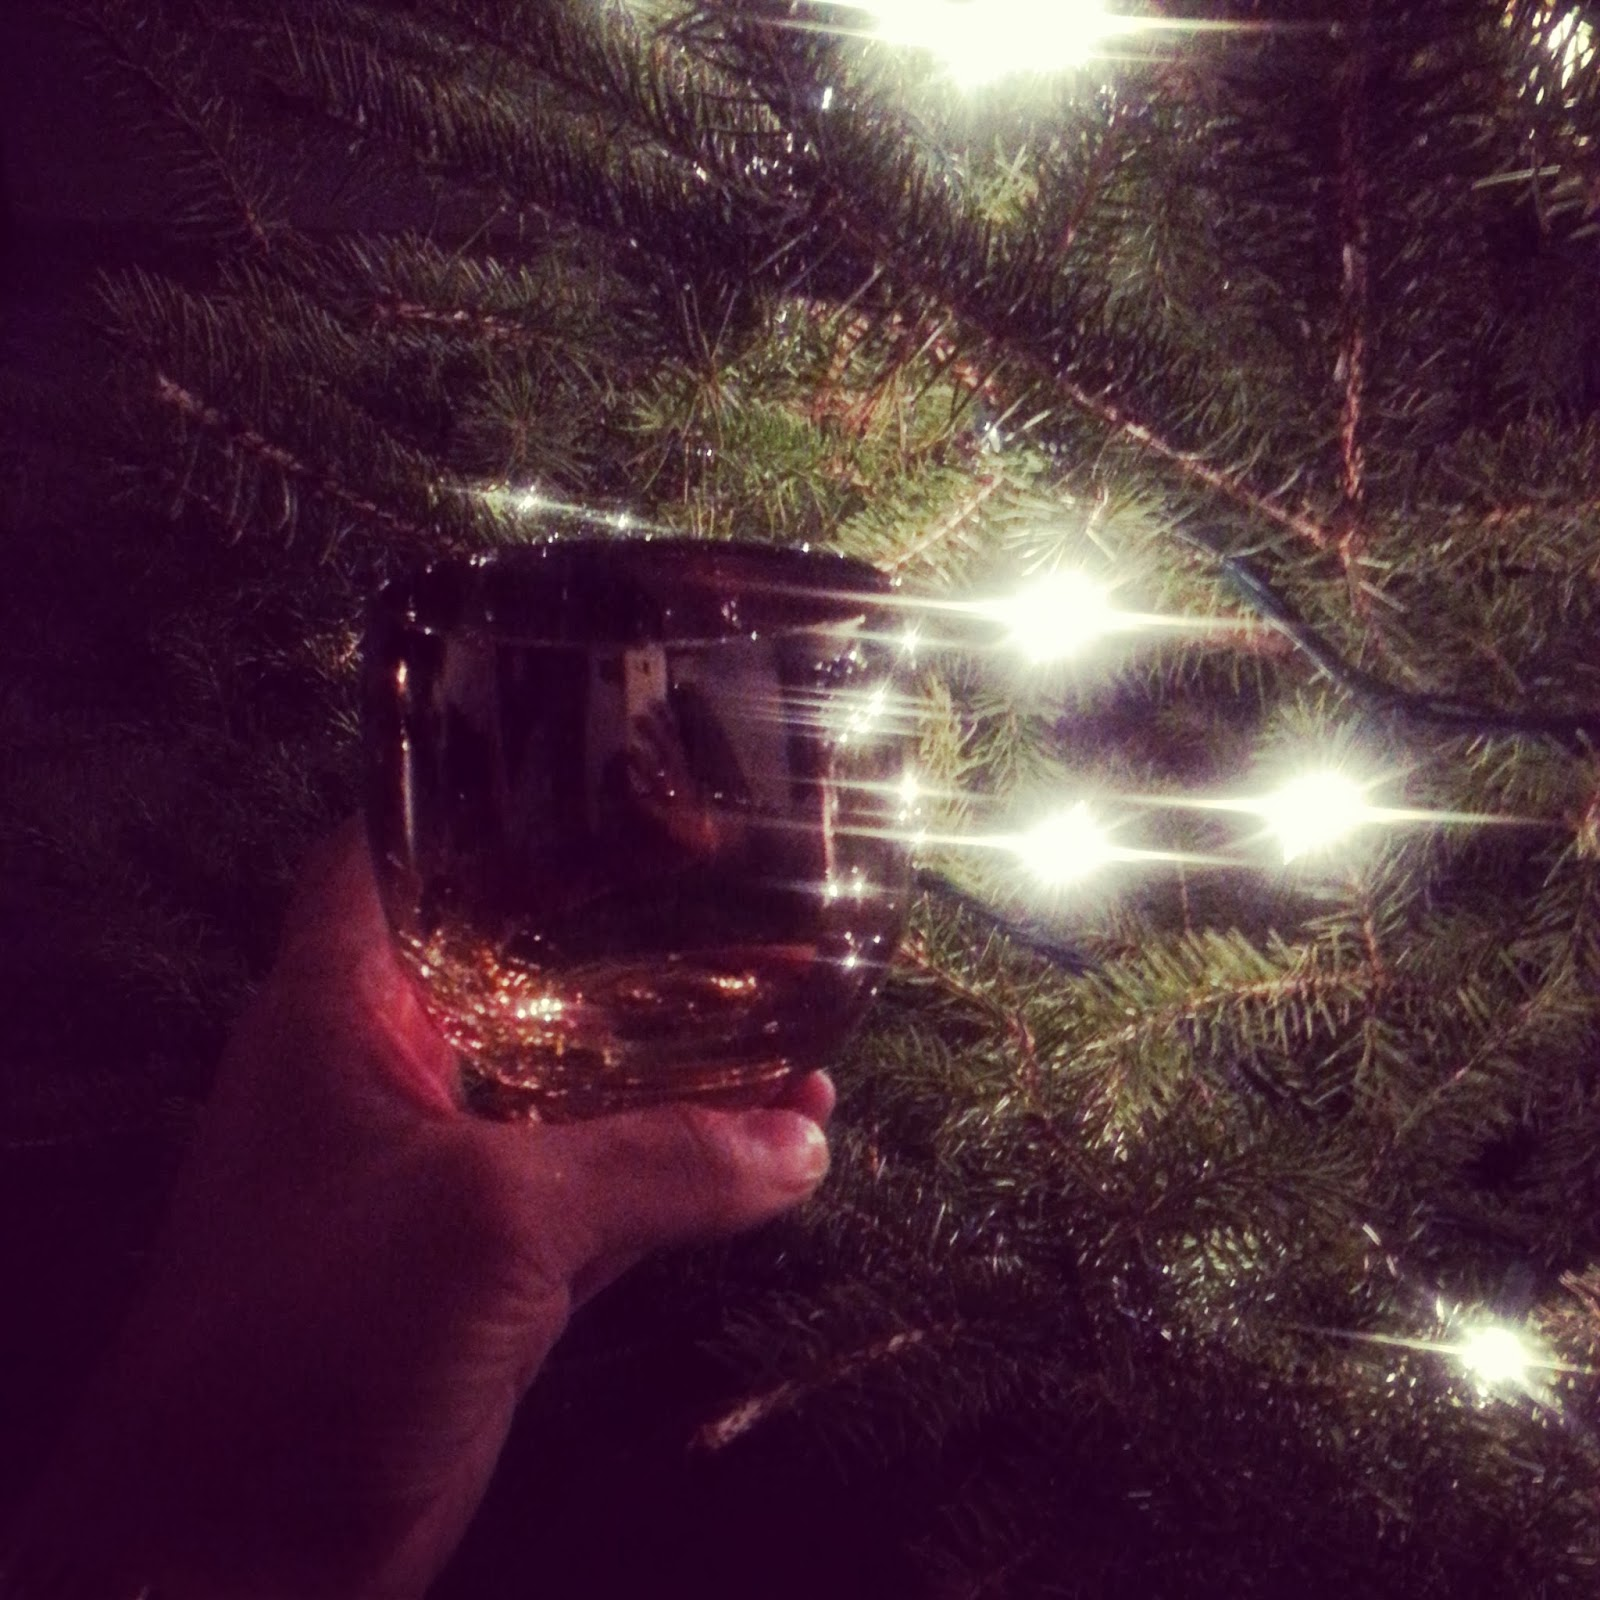 Japanese whisky at Christmas  |  Christmas traditions on afeathery*nest  |  www.afeatherynest.blogspot.com